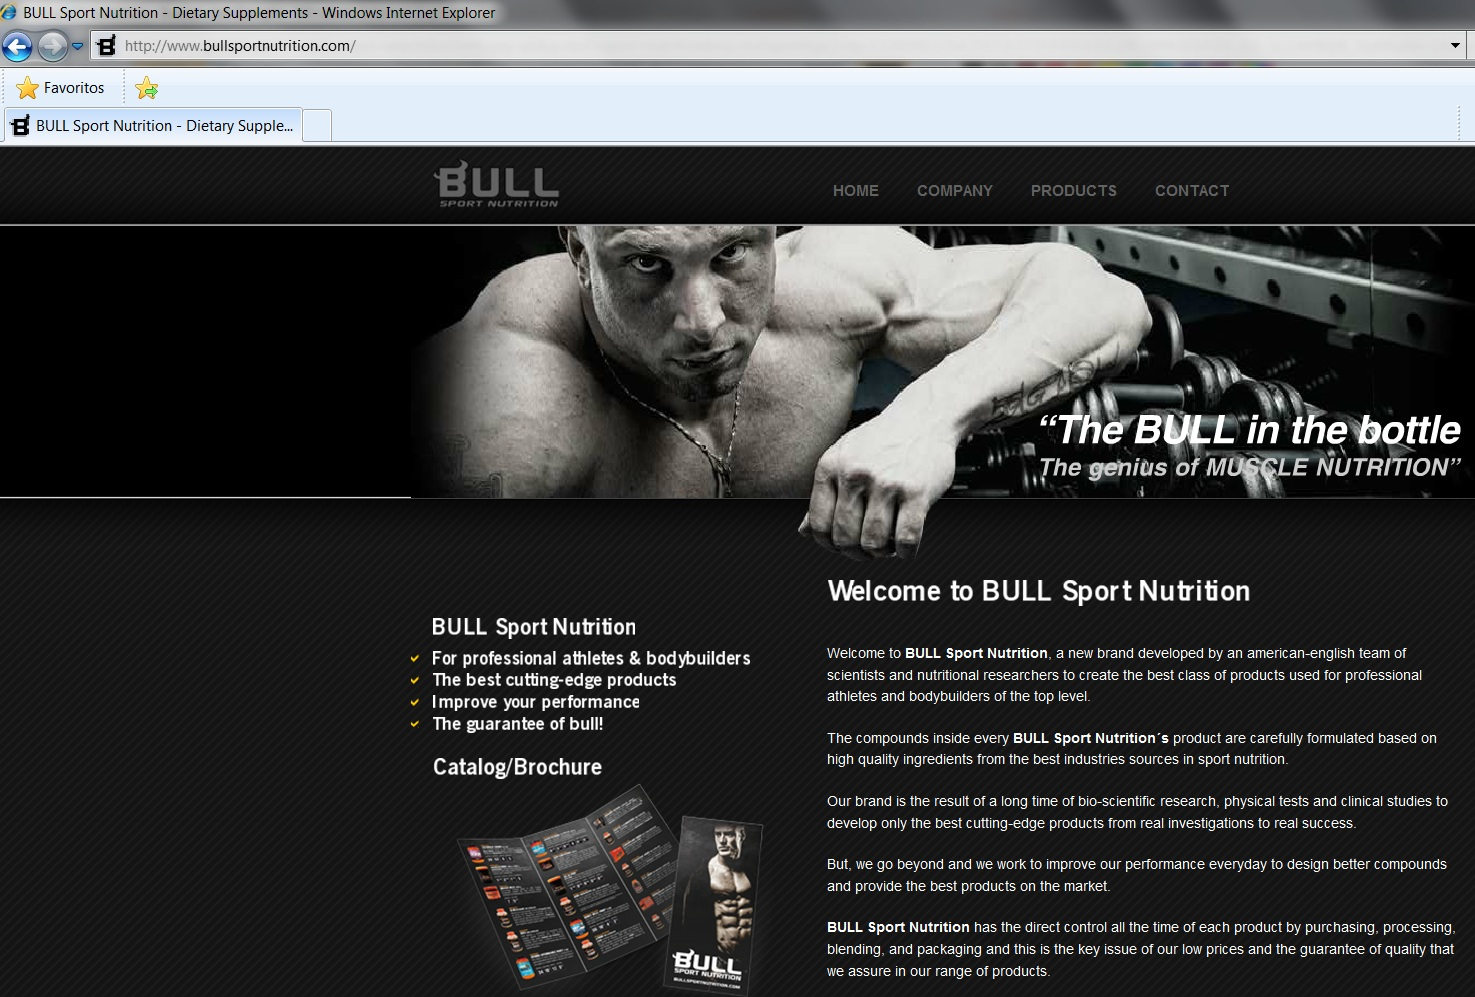 ESTAFA!!!  Web BULL Sport Nutrition